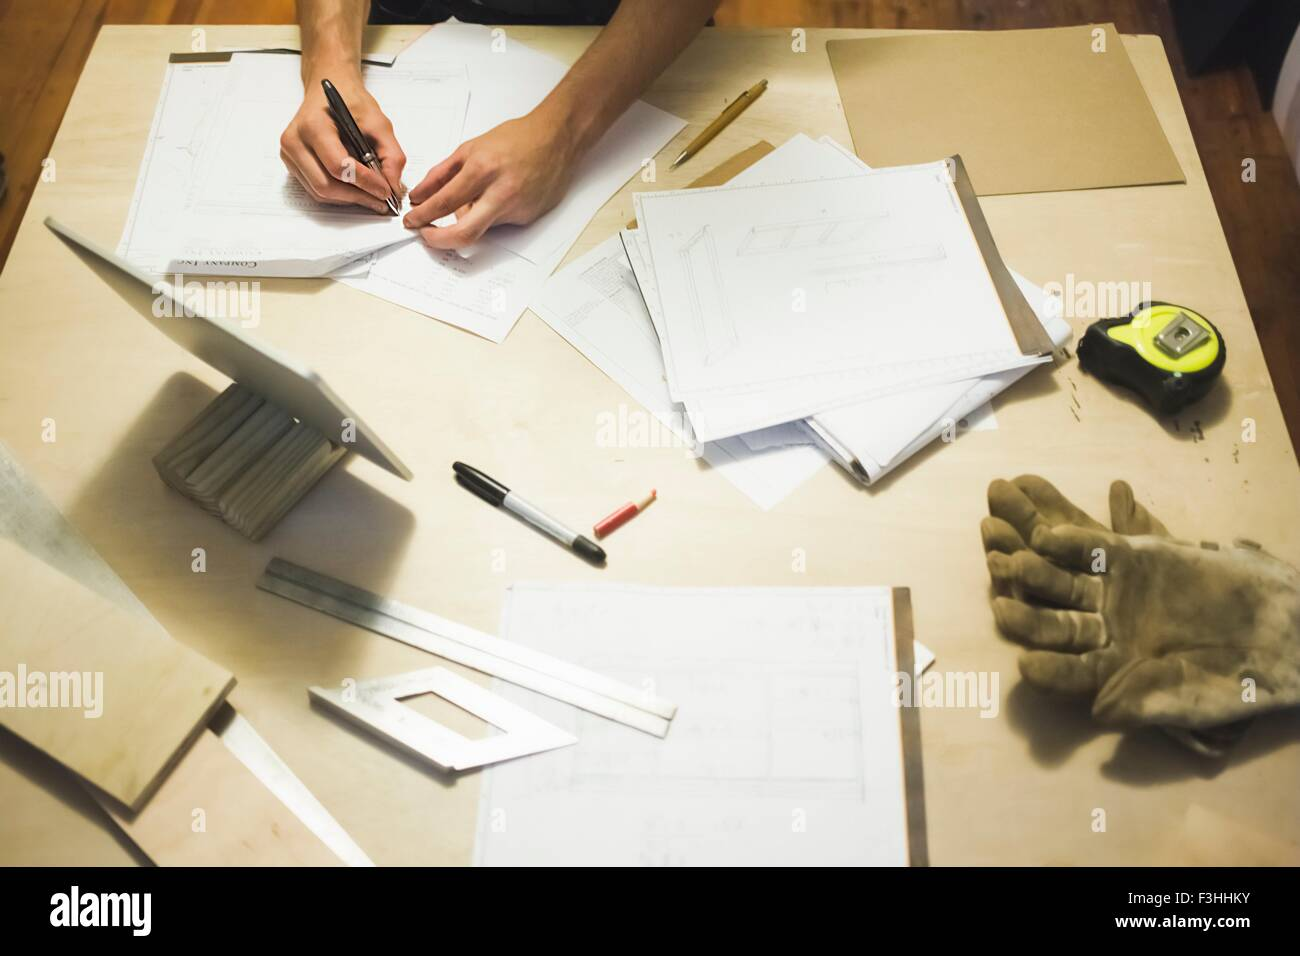 High angle view of desk and young man's hands writing - Stock Image